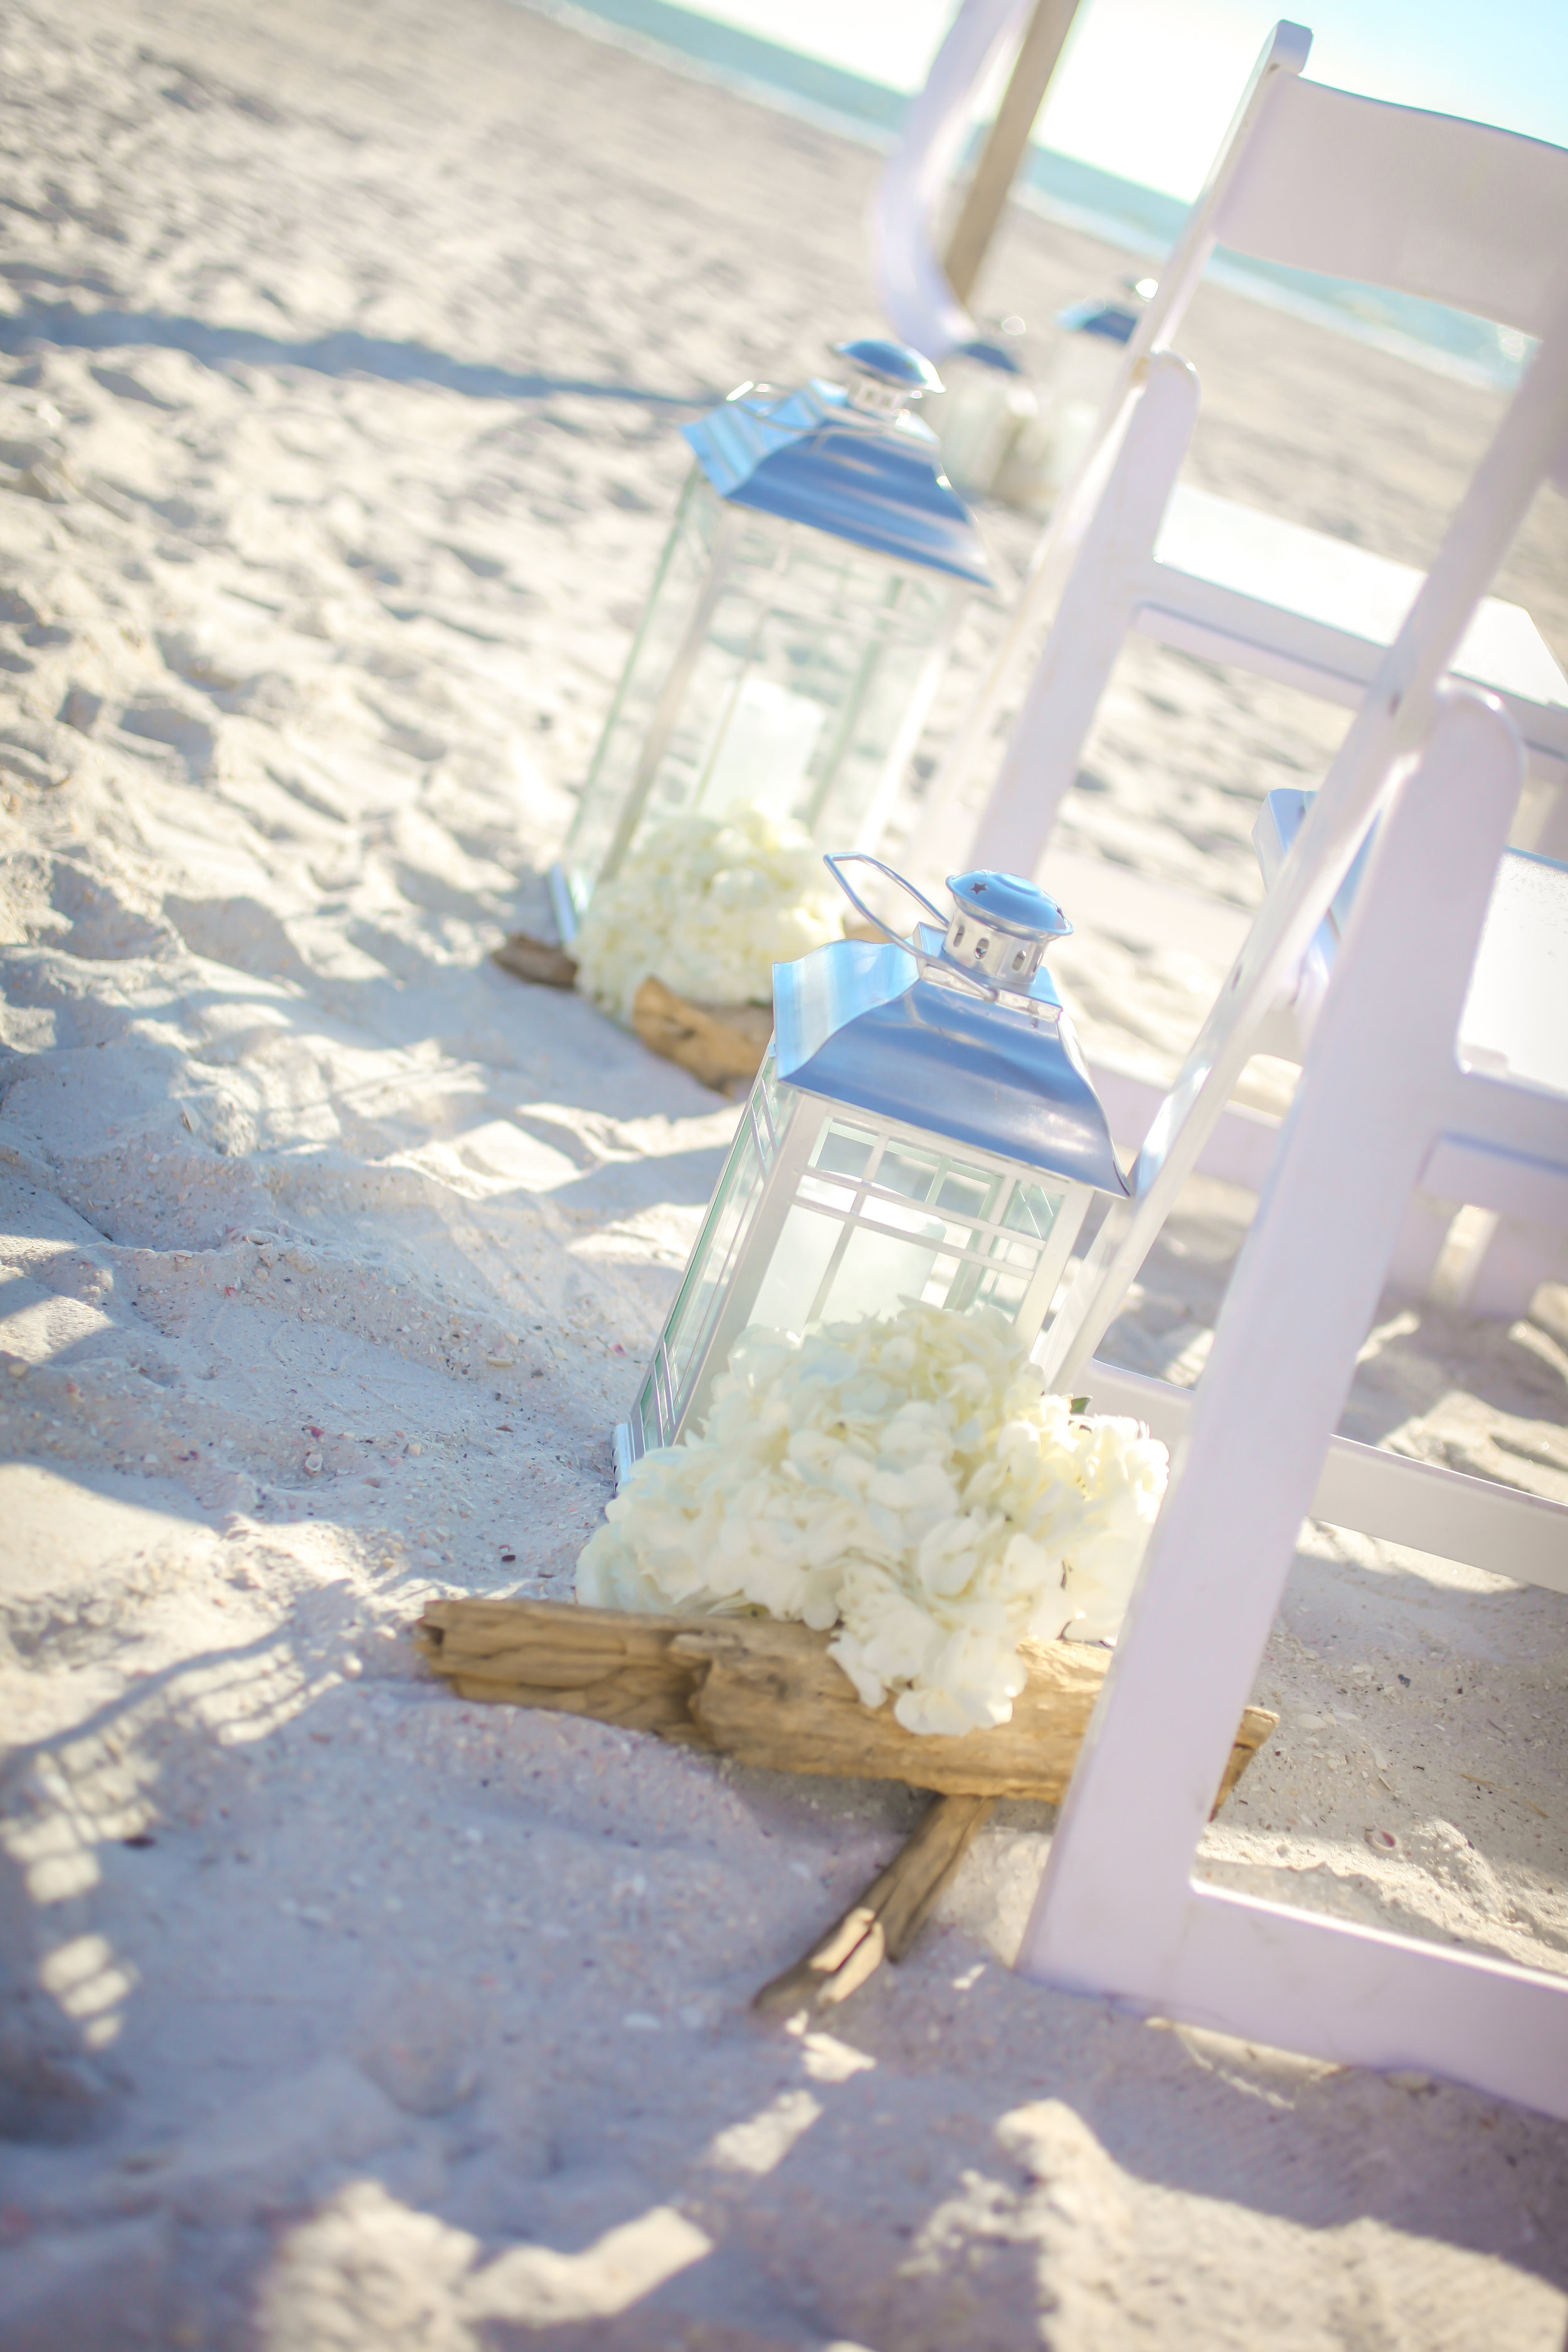 Along the ceremony aisle, lanterns and driftwood sat beside guest chairs.